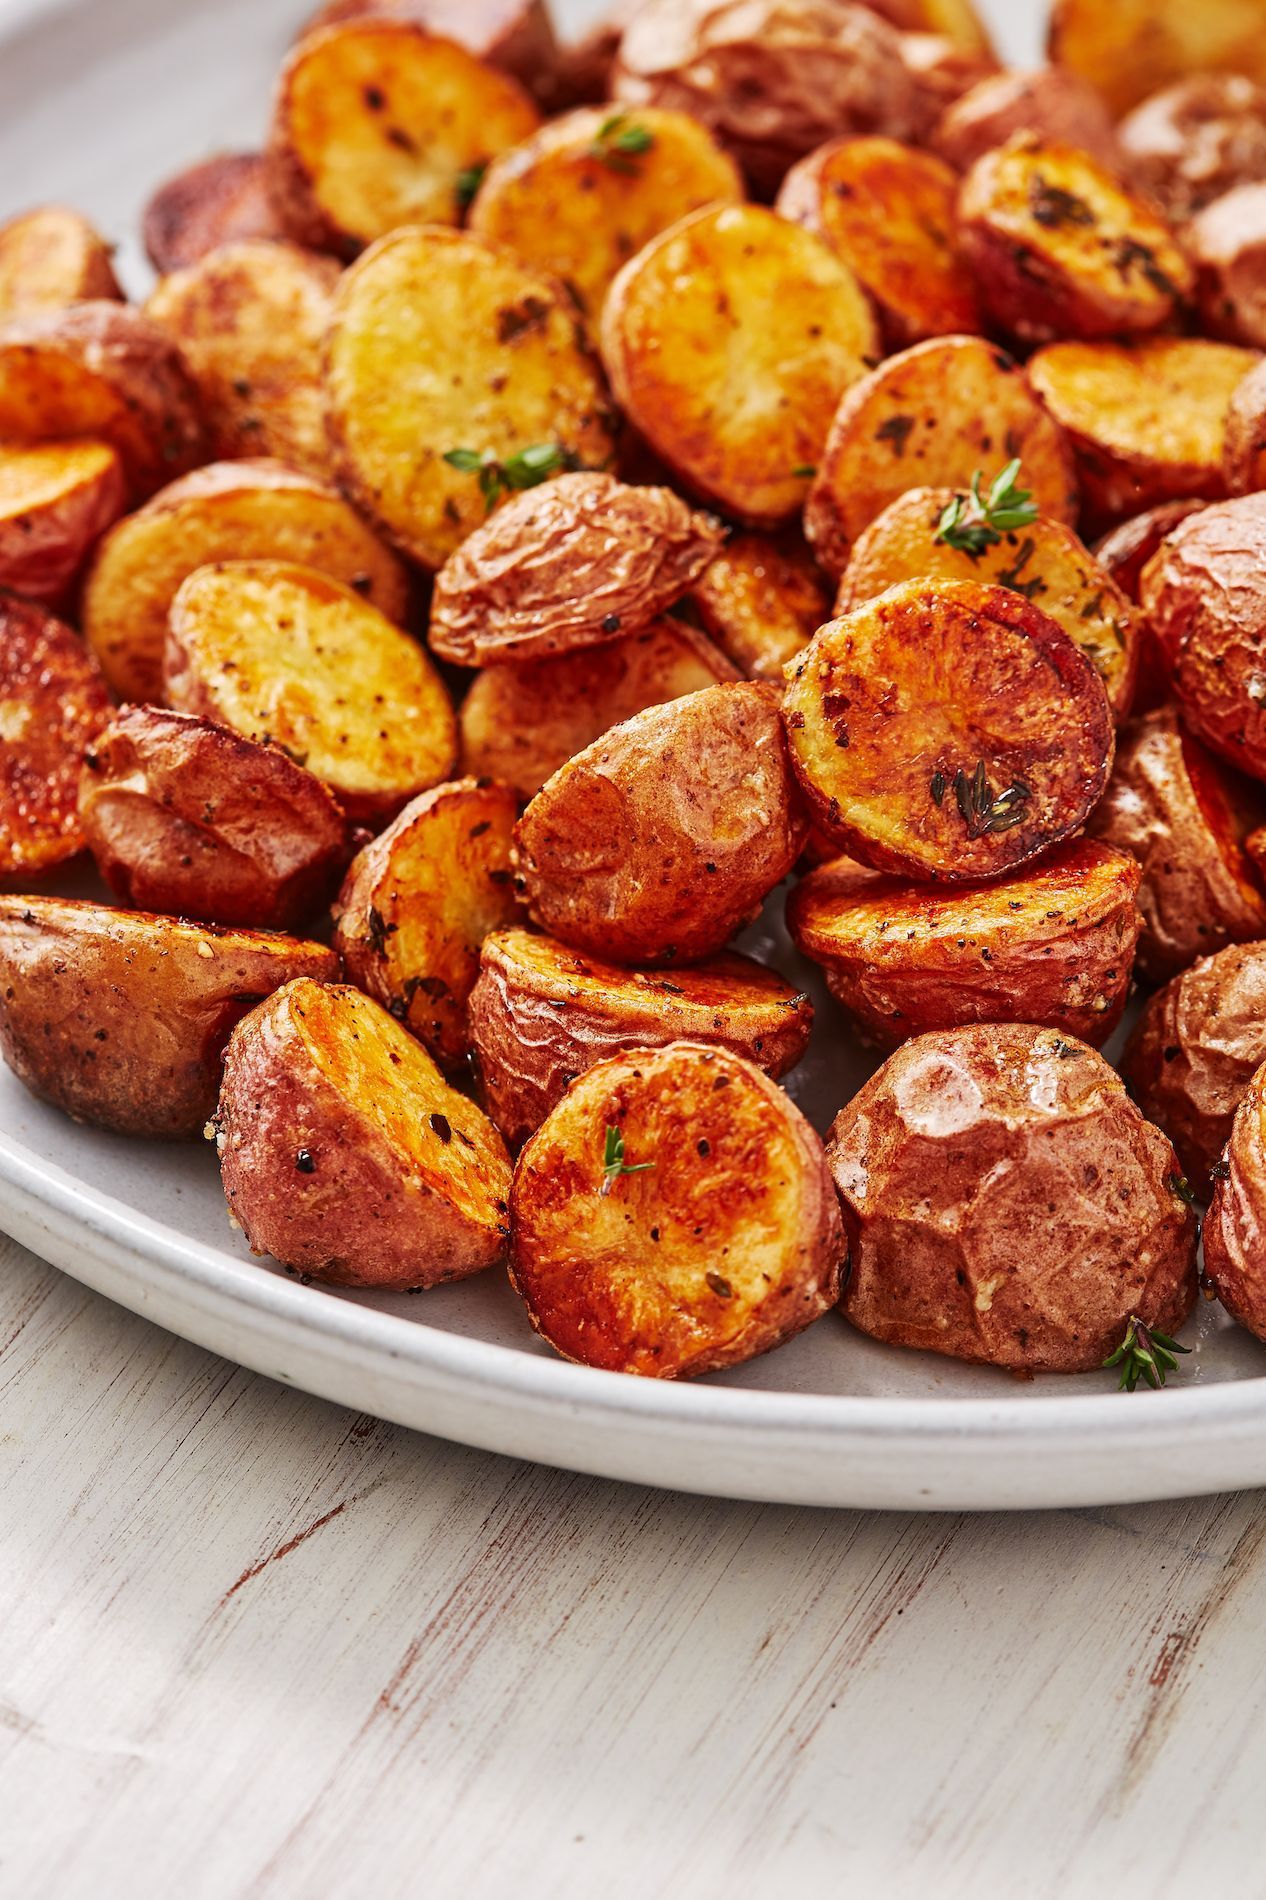 Roasted Red Potatoes Recipe Roasted Baby Potatoes Red Potatoes Healthy Cooking Recipes